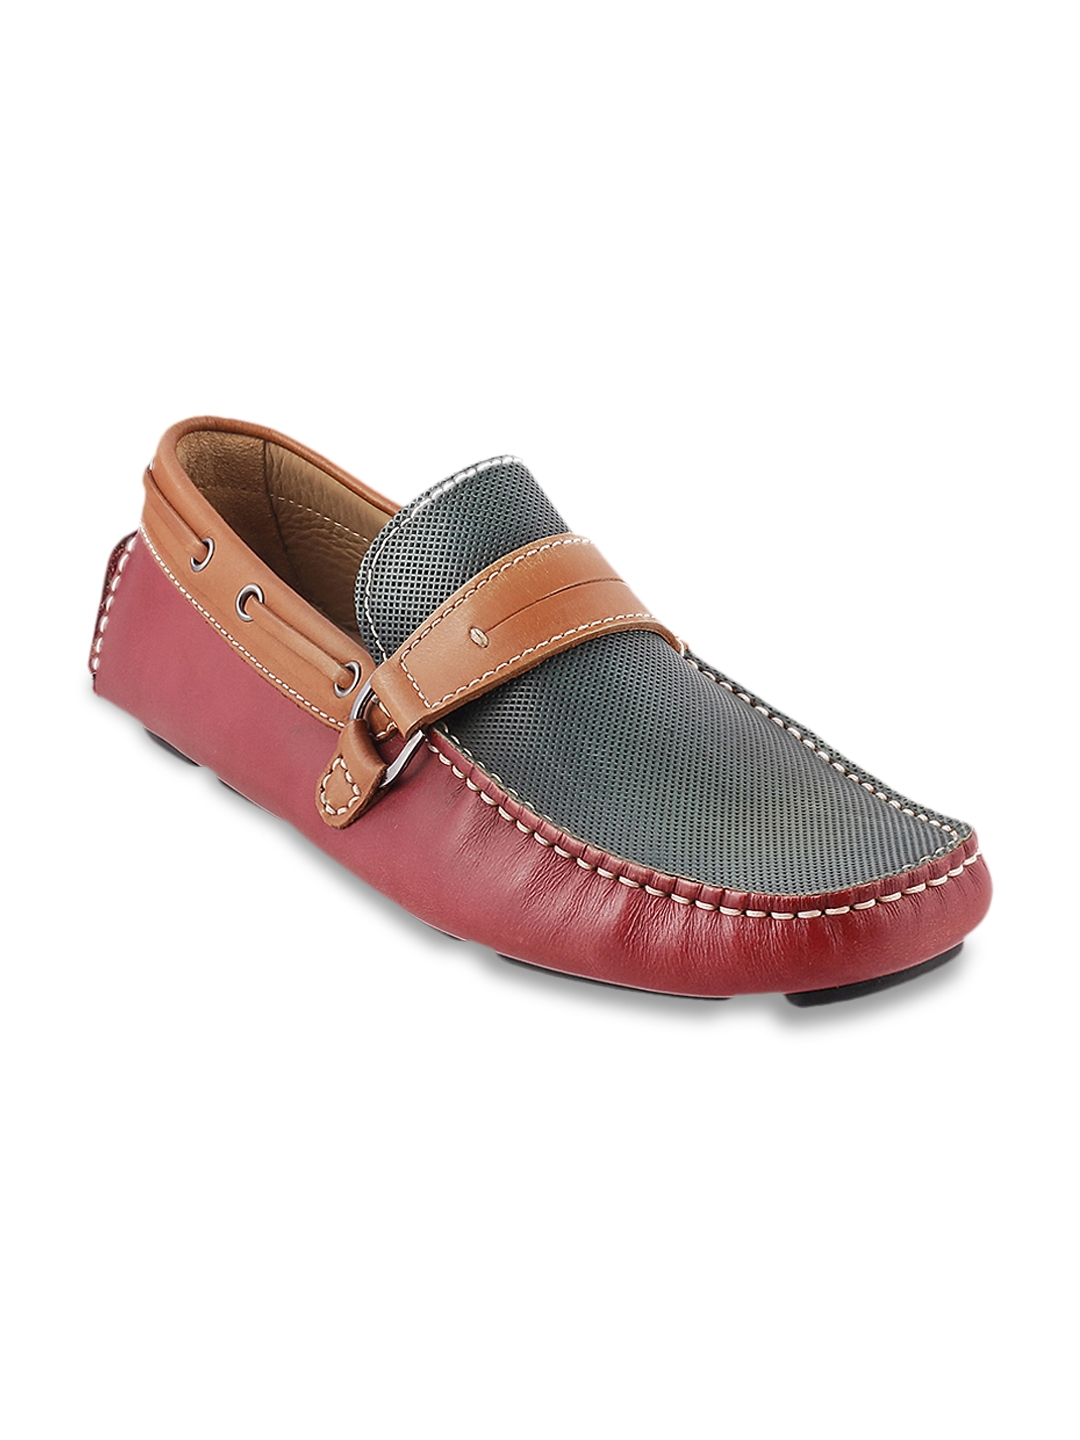 be9ca05abb3 Buy J.FONTINI Men Maroon Leather Loafers - Casual Shoes for Men ...